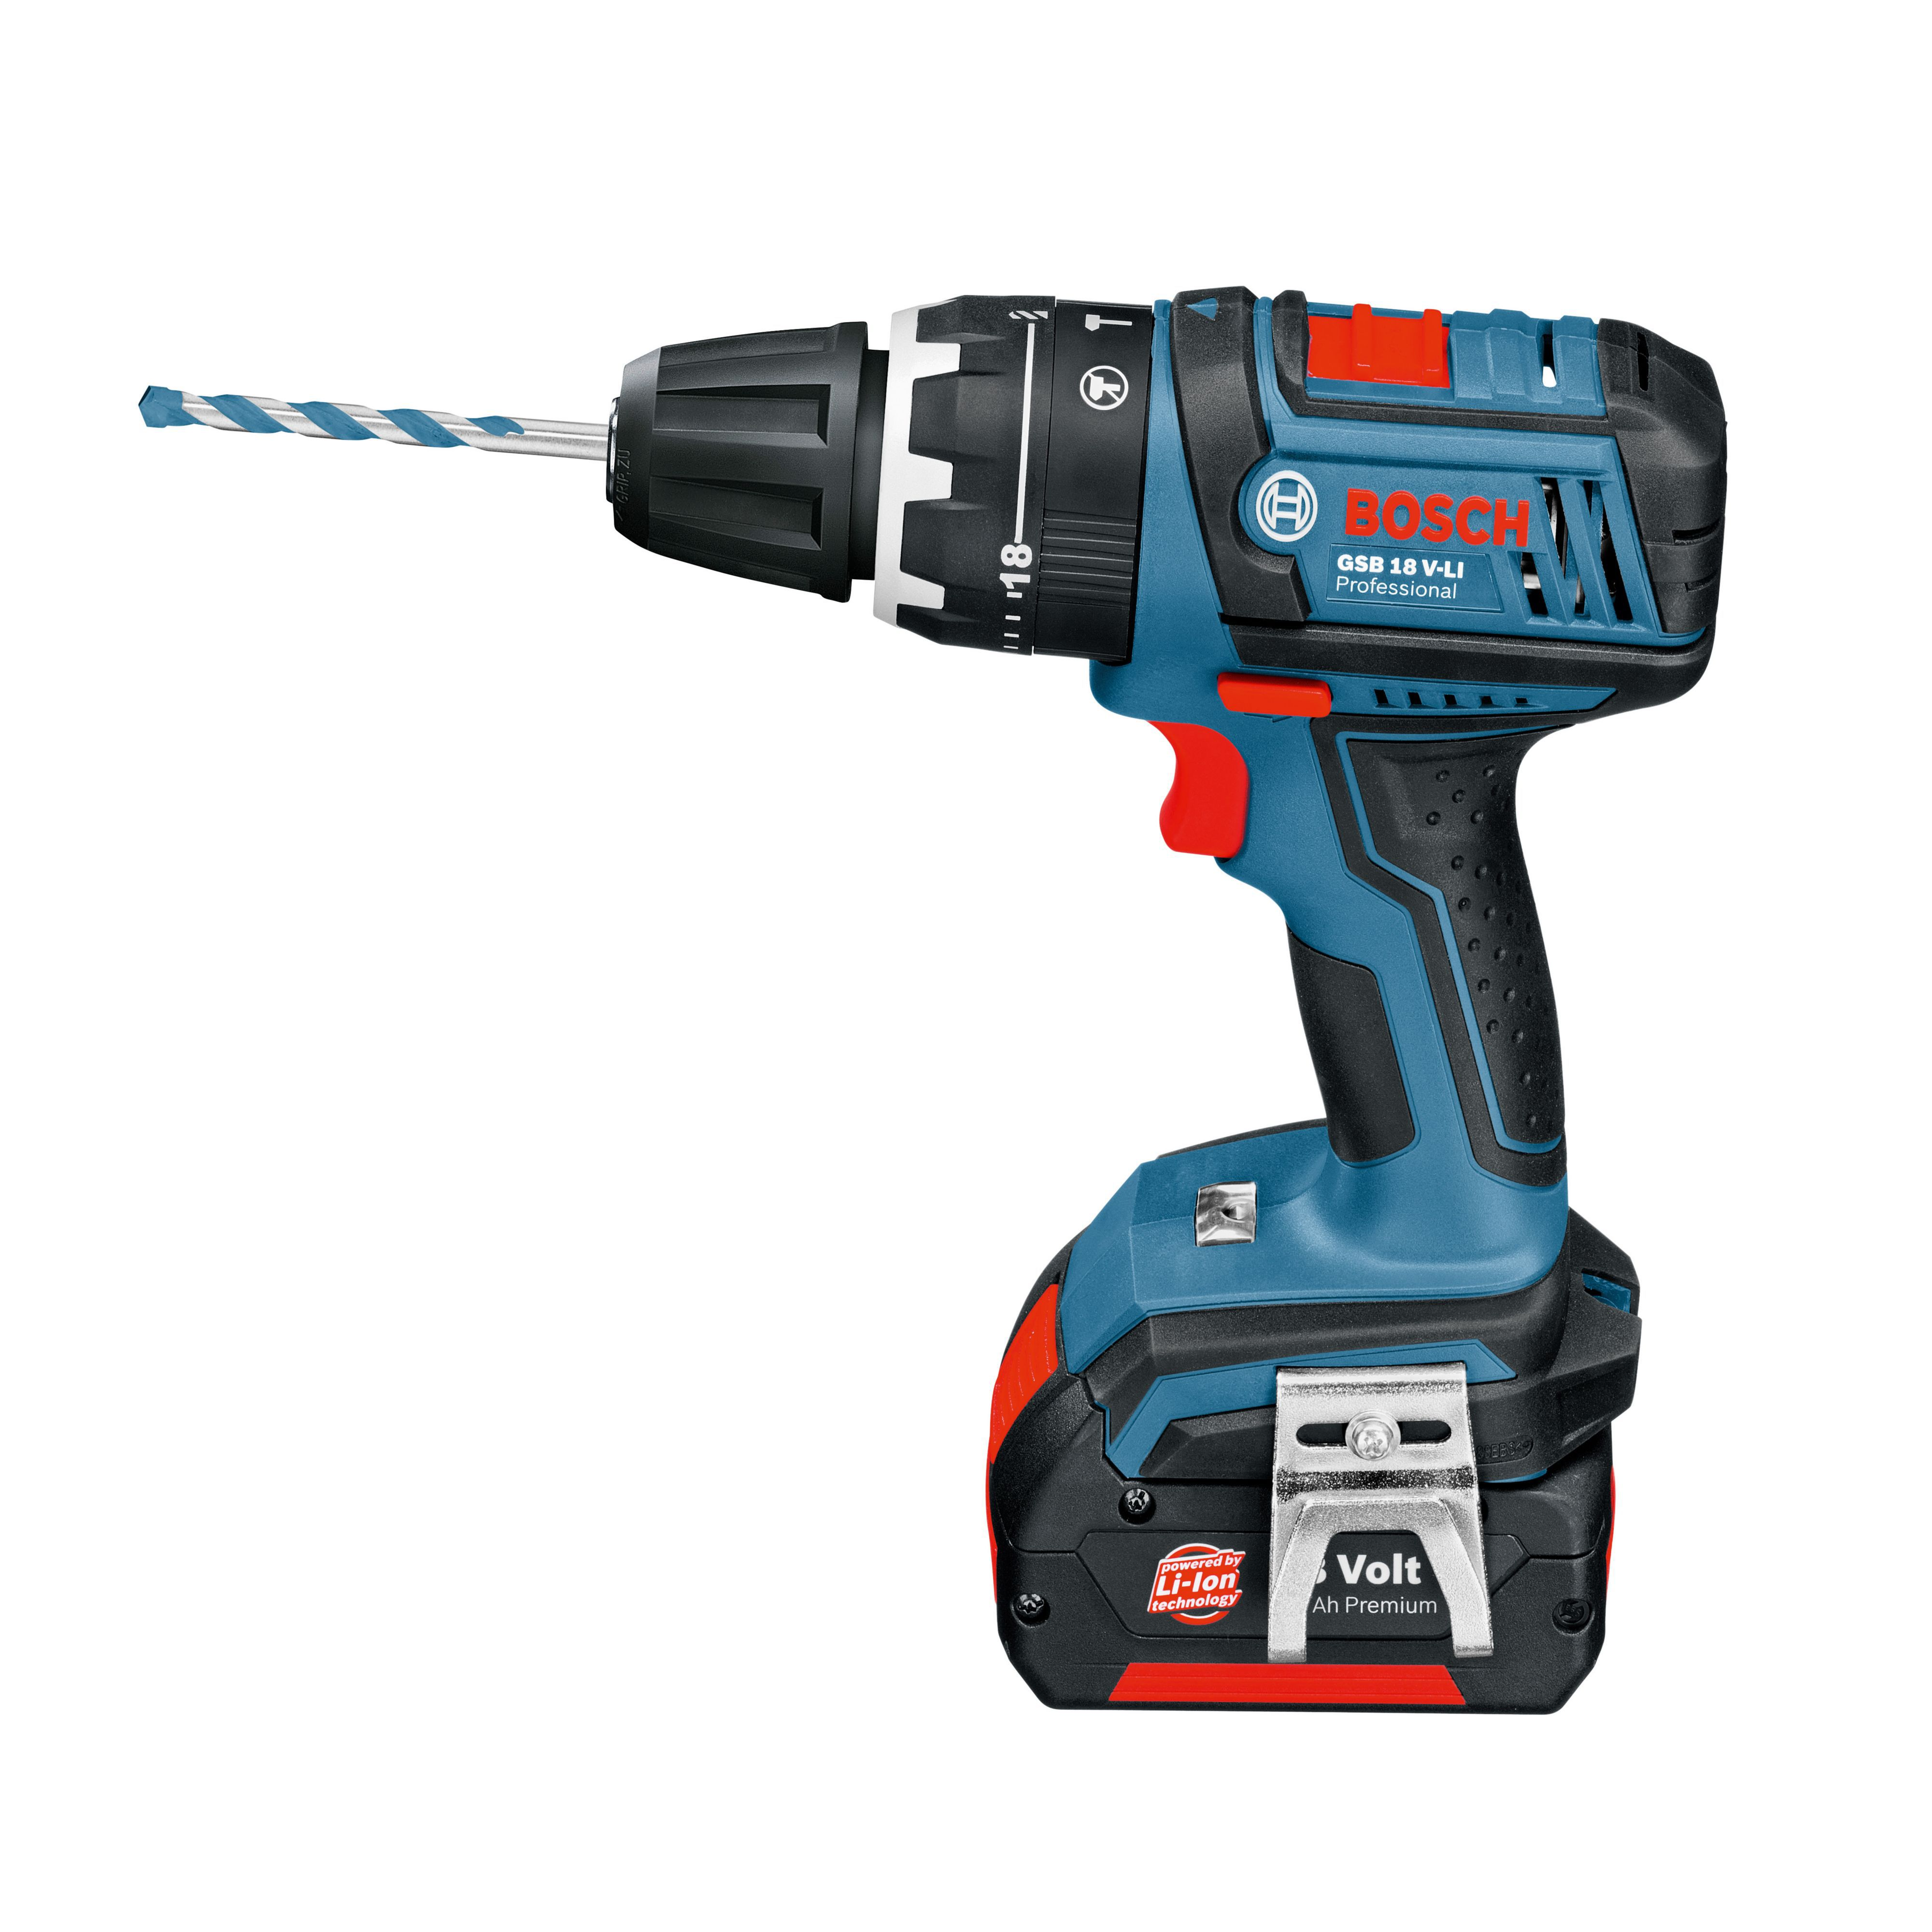 bosch dynamic series cordless 18v 1 5ah li ion combi drill. Black Bedroom Furniture Sets. Home Design Ideas